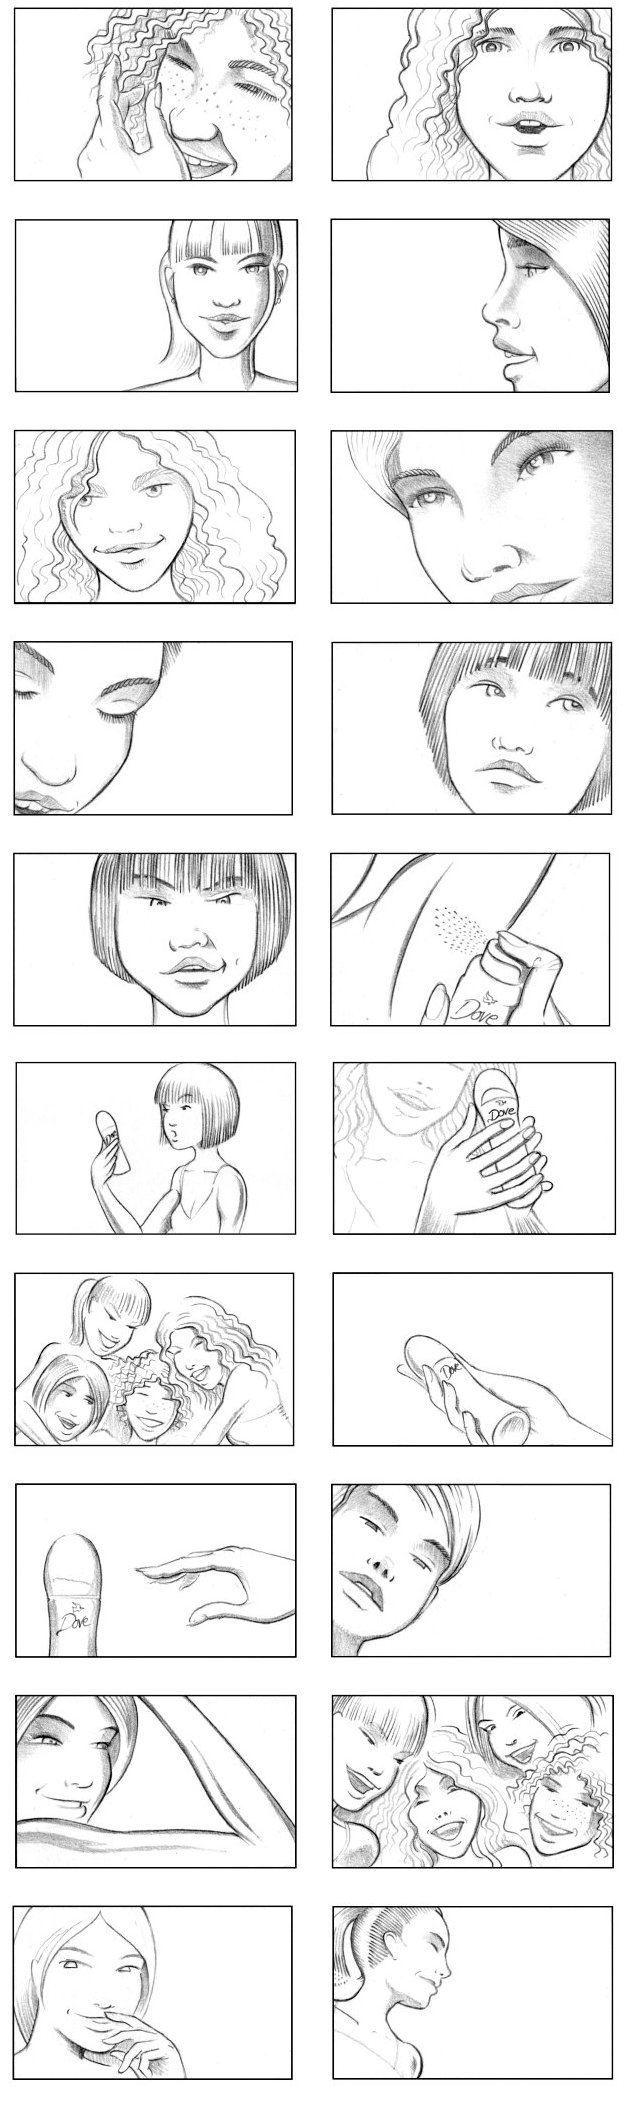 DOVE DEODORANT STORYBOARD BY ANDY SPARROW